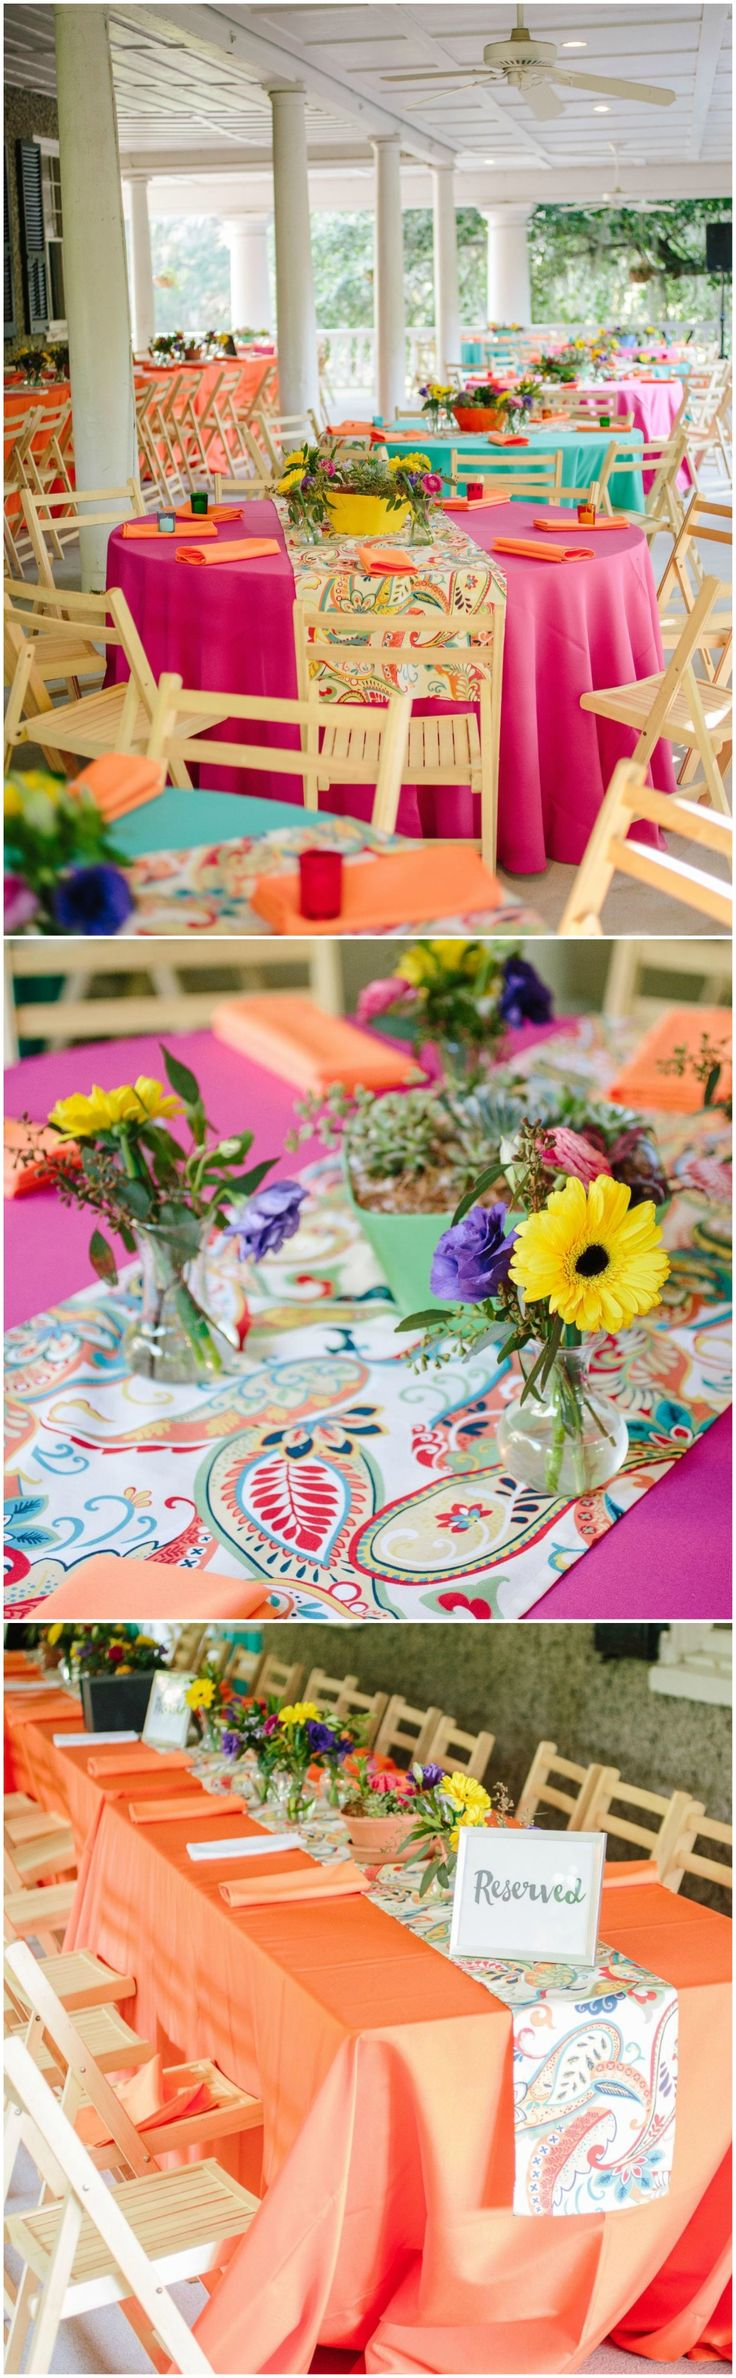 Colorful wedding, reception décor, hot pink & orange tablecloths, rainbow paisley runners, daisies, turquoise // Riverland Studios